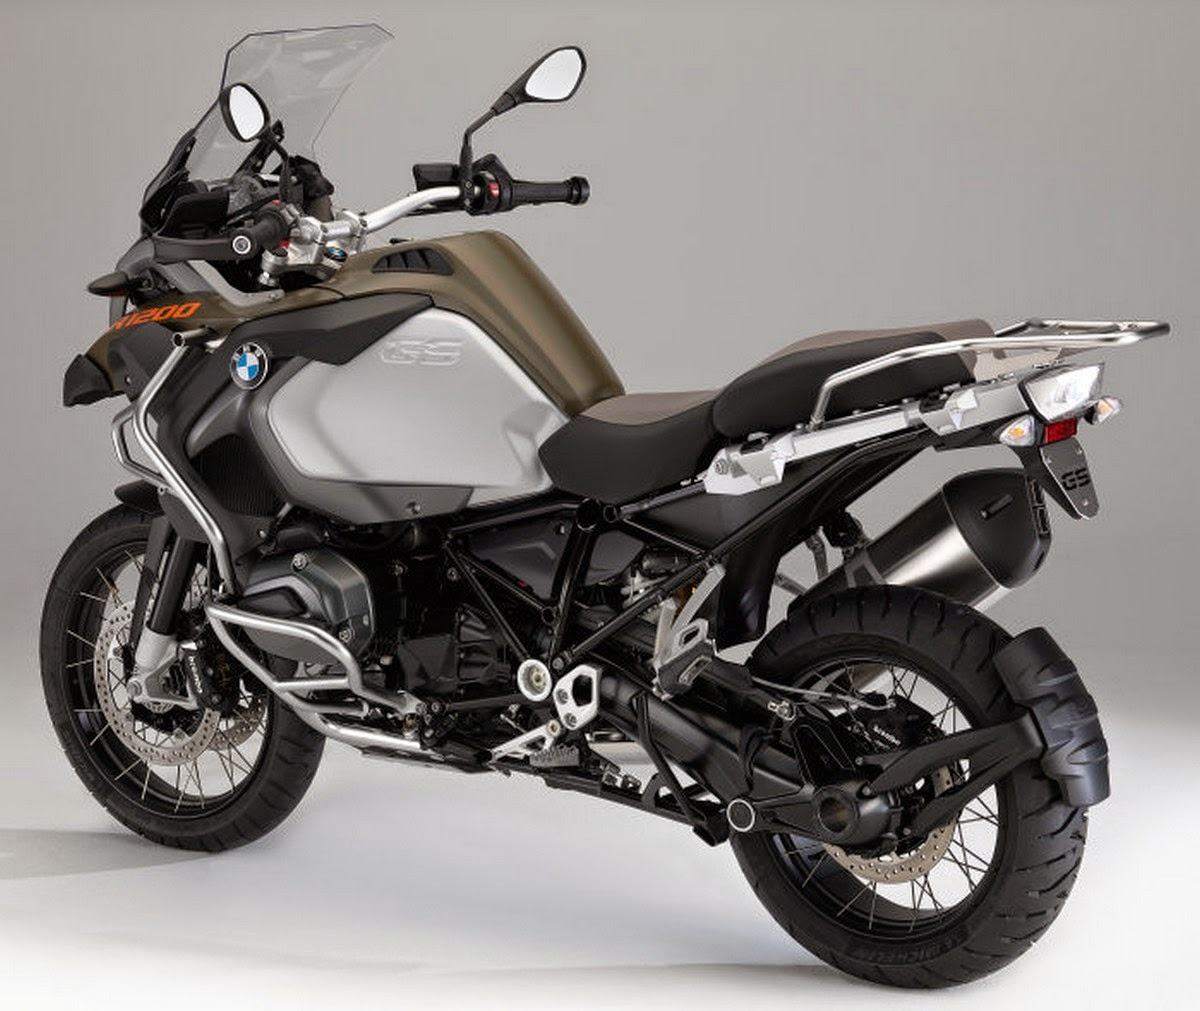 new motorcycle 2015 2016 2017 bmw r1200gs adventure review and price. Black Bedroom Furniture Sets. Home Design Ideas